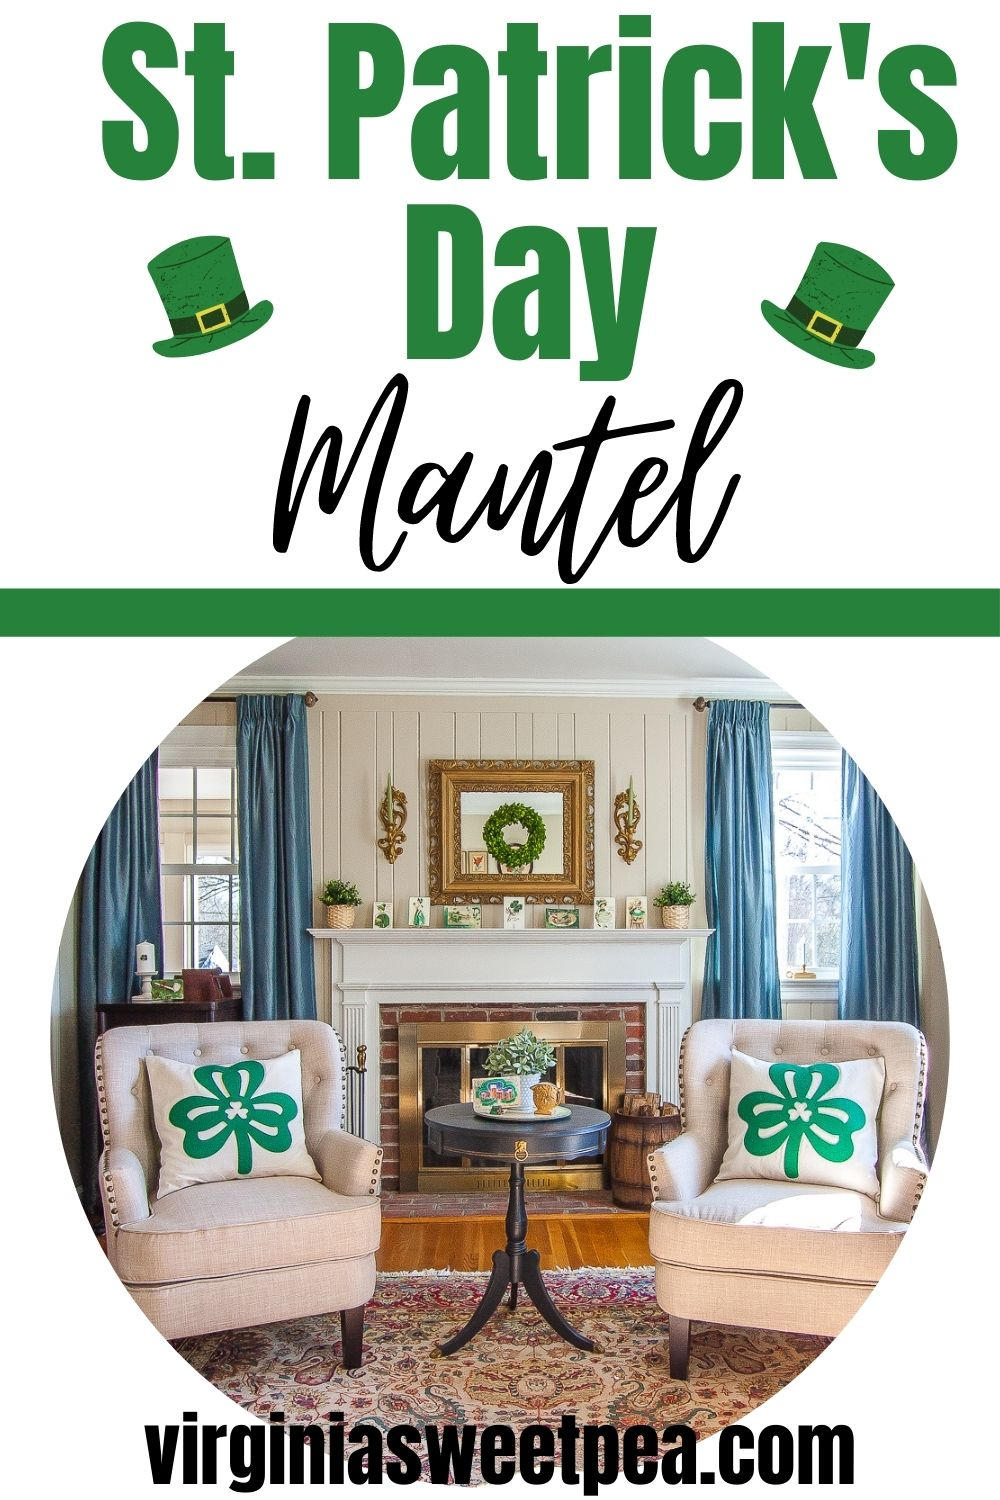 Decorate for March with a St. Patrick's Day mantel.  See how this mantel is decorated for the season with green plants, a wreath, candles, as well as gorgeous vintage St. Patrick's Day postcards. via @spaula